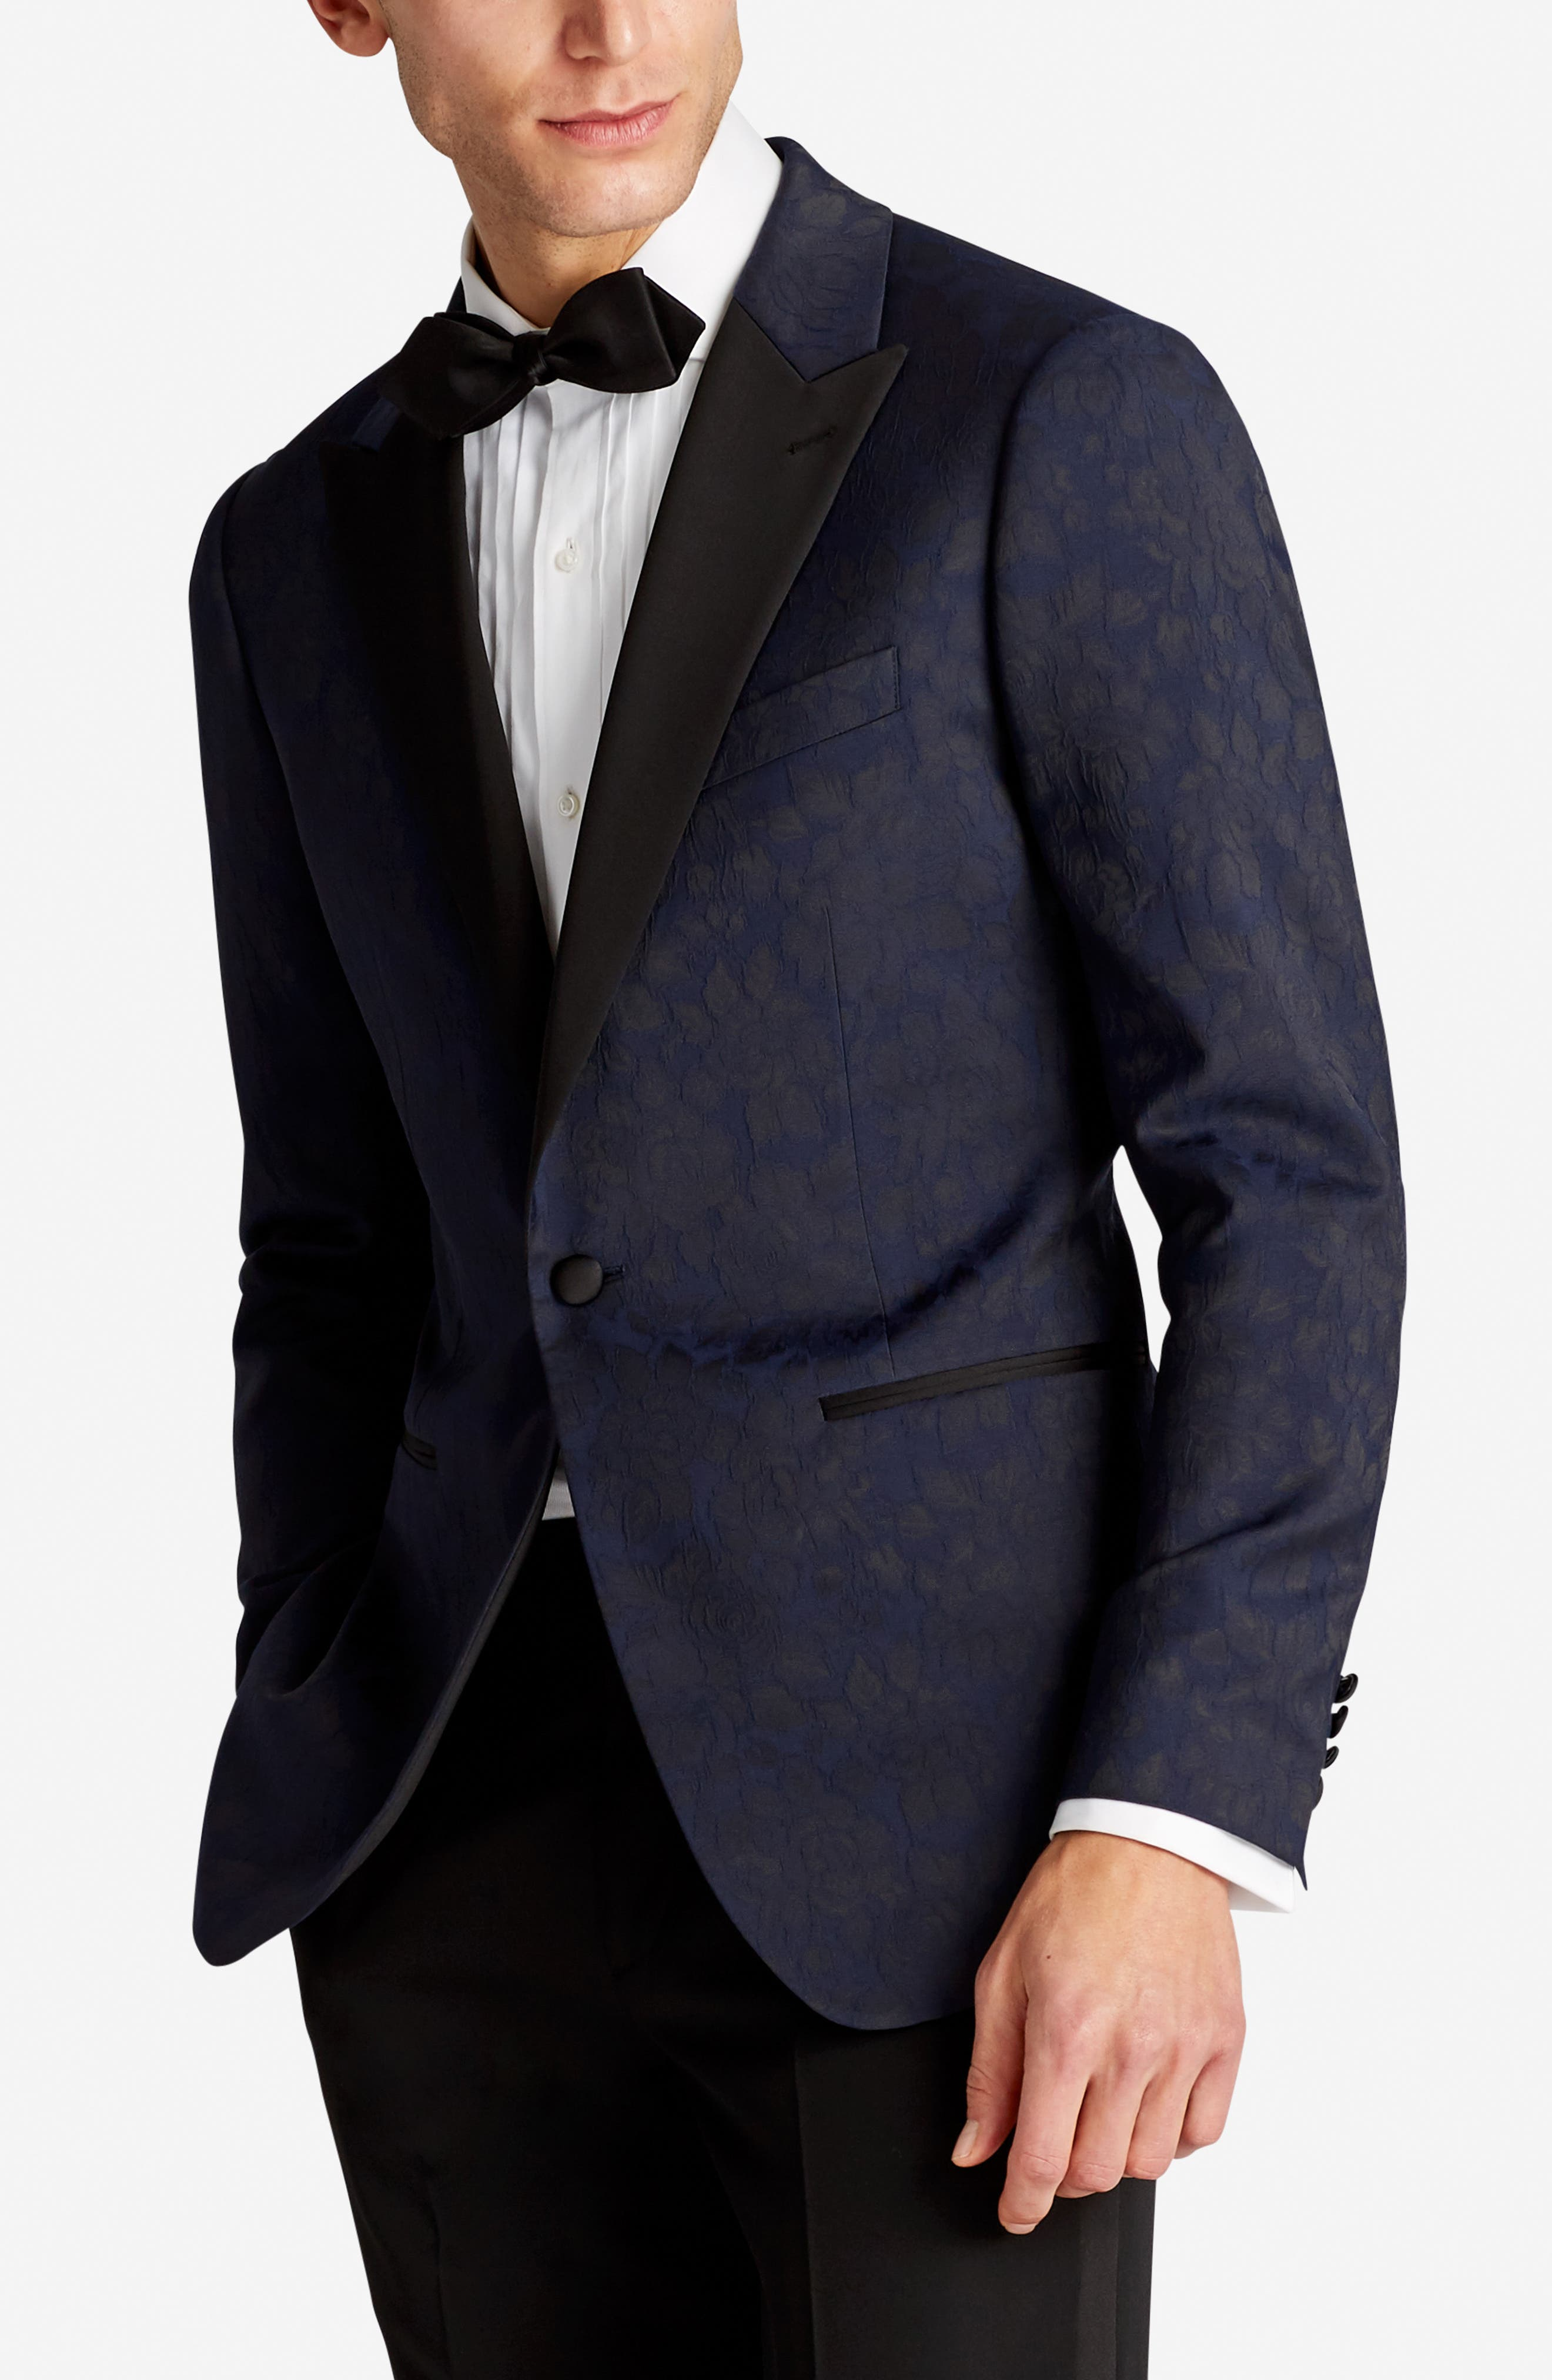 Capstone Slim Fit Stretch Dinner Jacket,                             Alternate thumbnail 3, color,                             Floral Jacquard